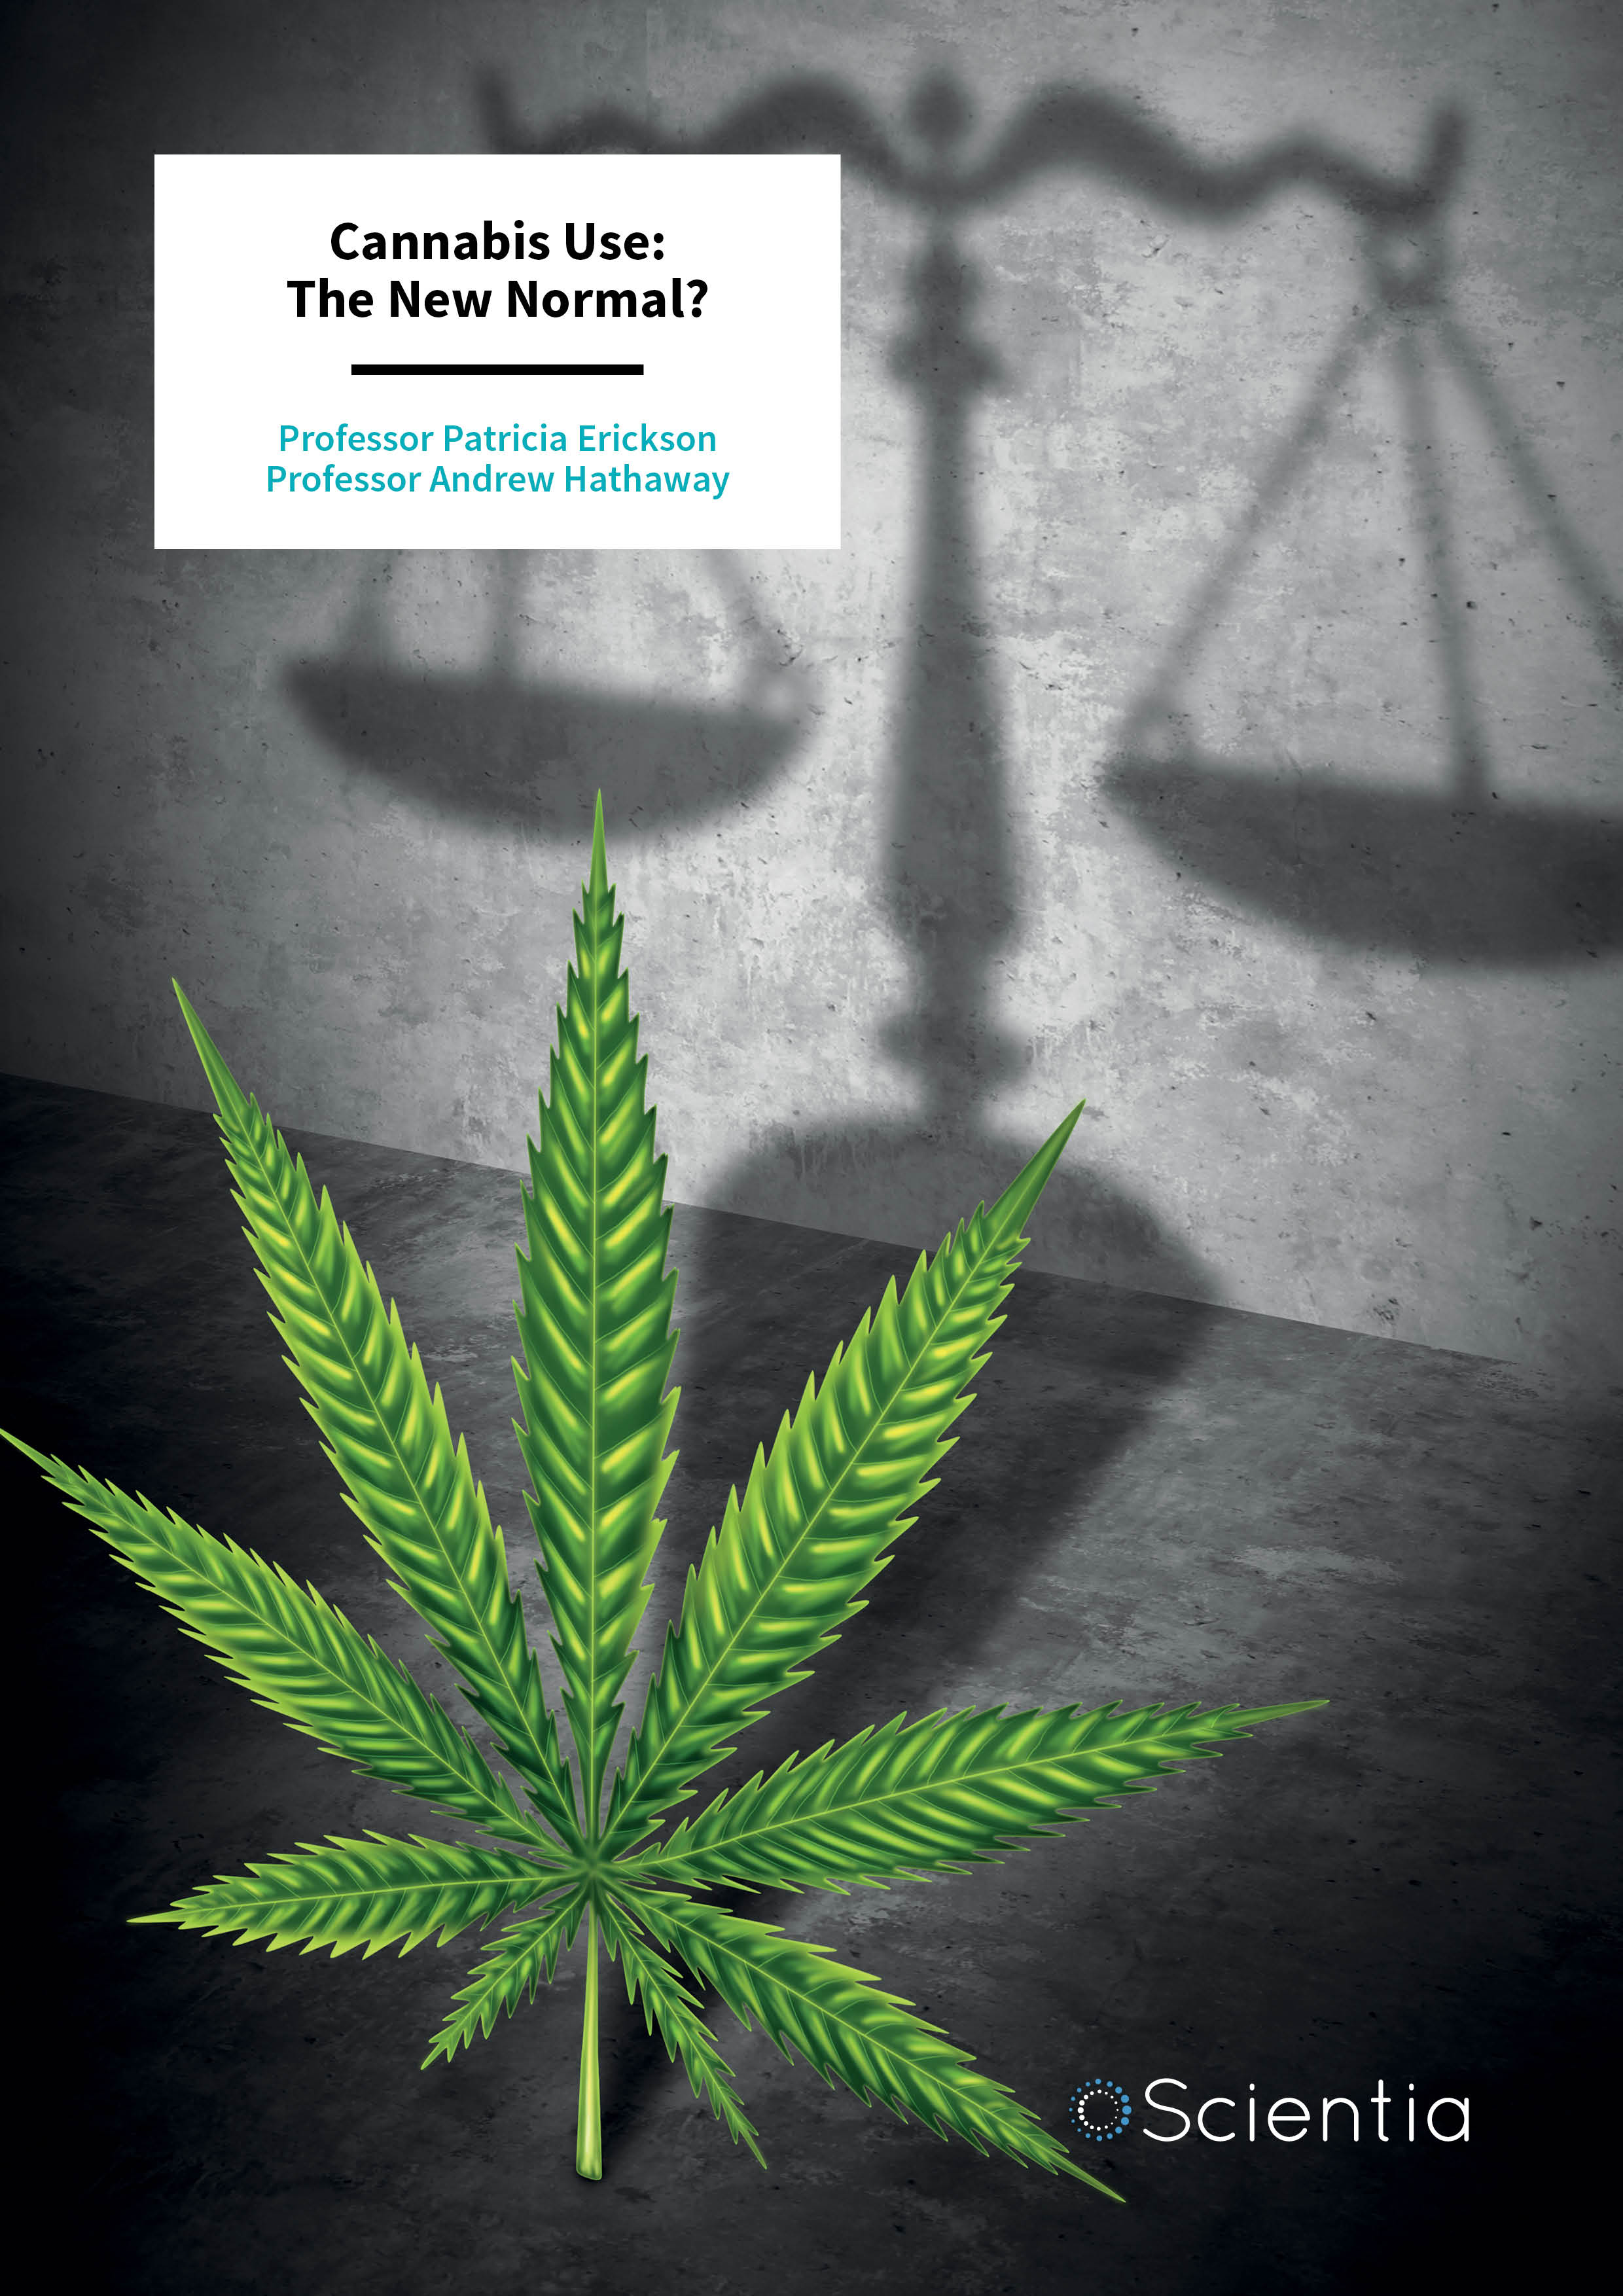 Professor Patricia Erickson | Professor Andrew Hathaway – Cannabis Use: The New Normal?